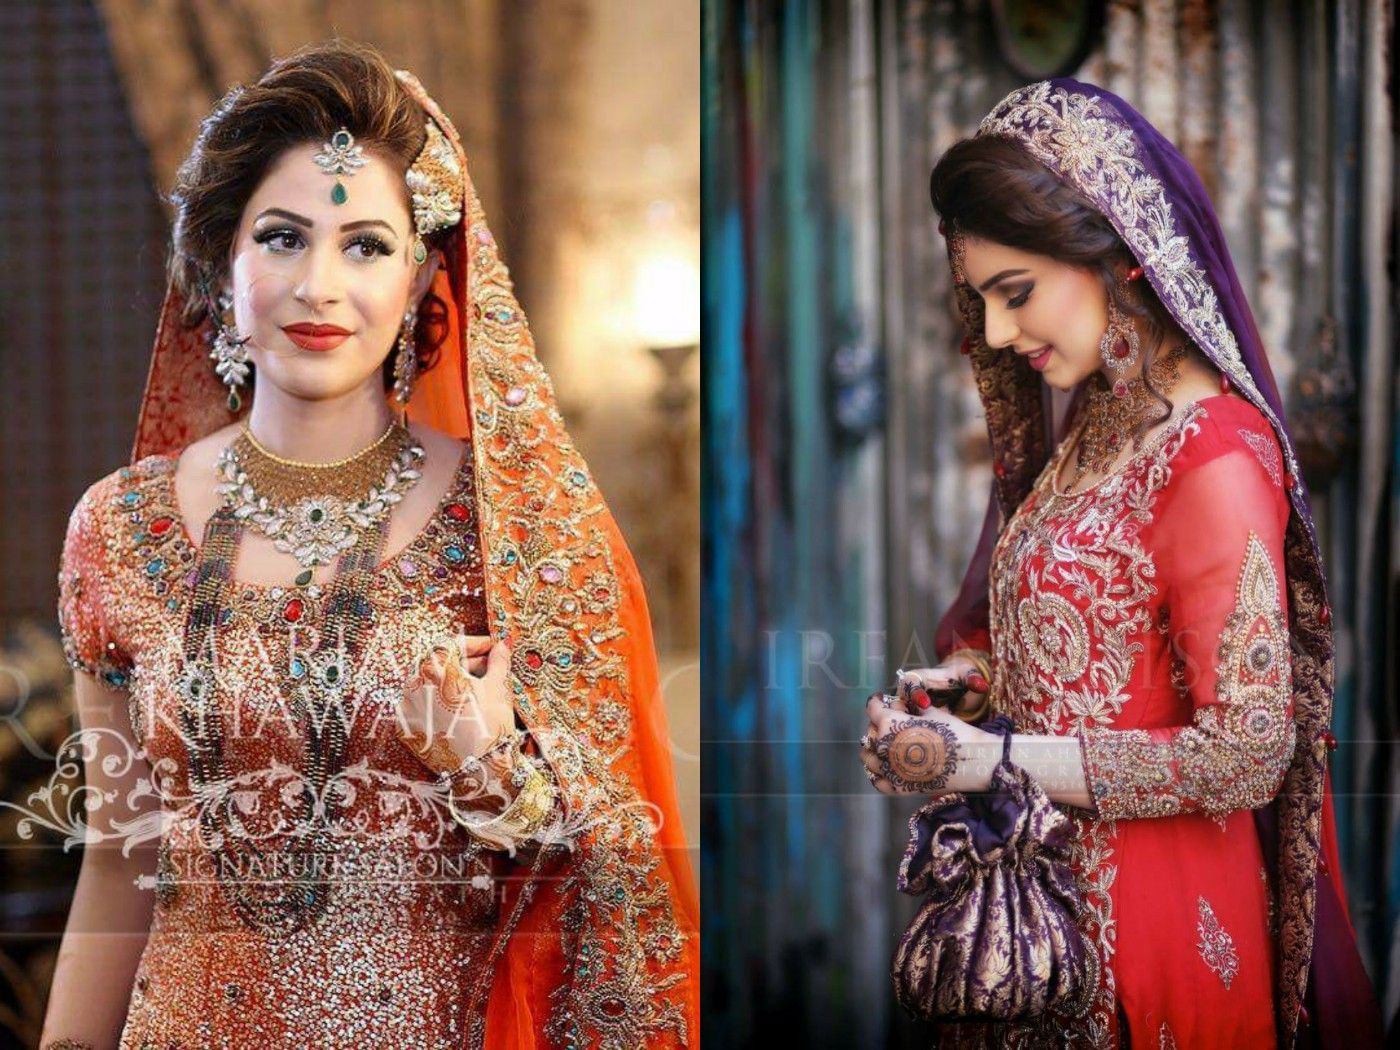 Irfan ahson travels for wedding photography - Makeup By Mariam Khawaja And Photography By Irfan Ahson